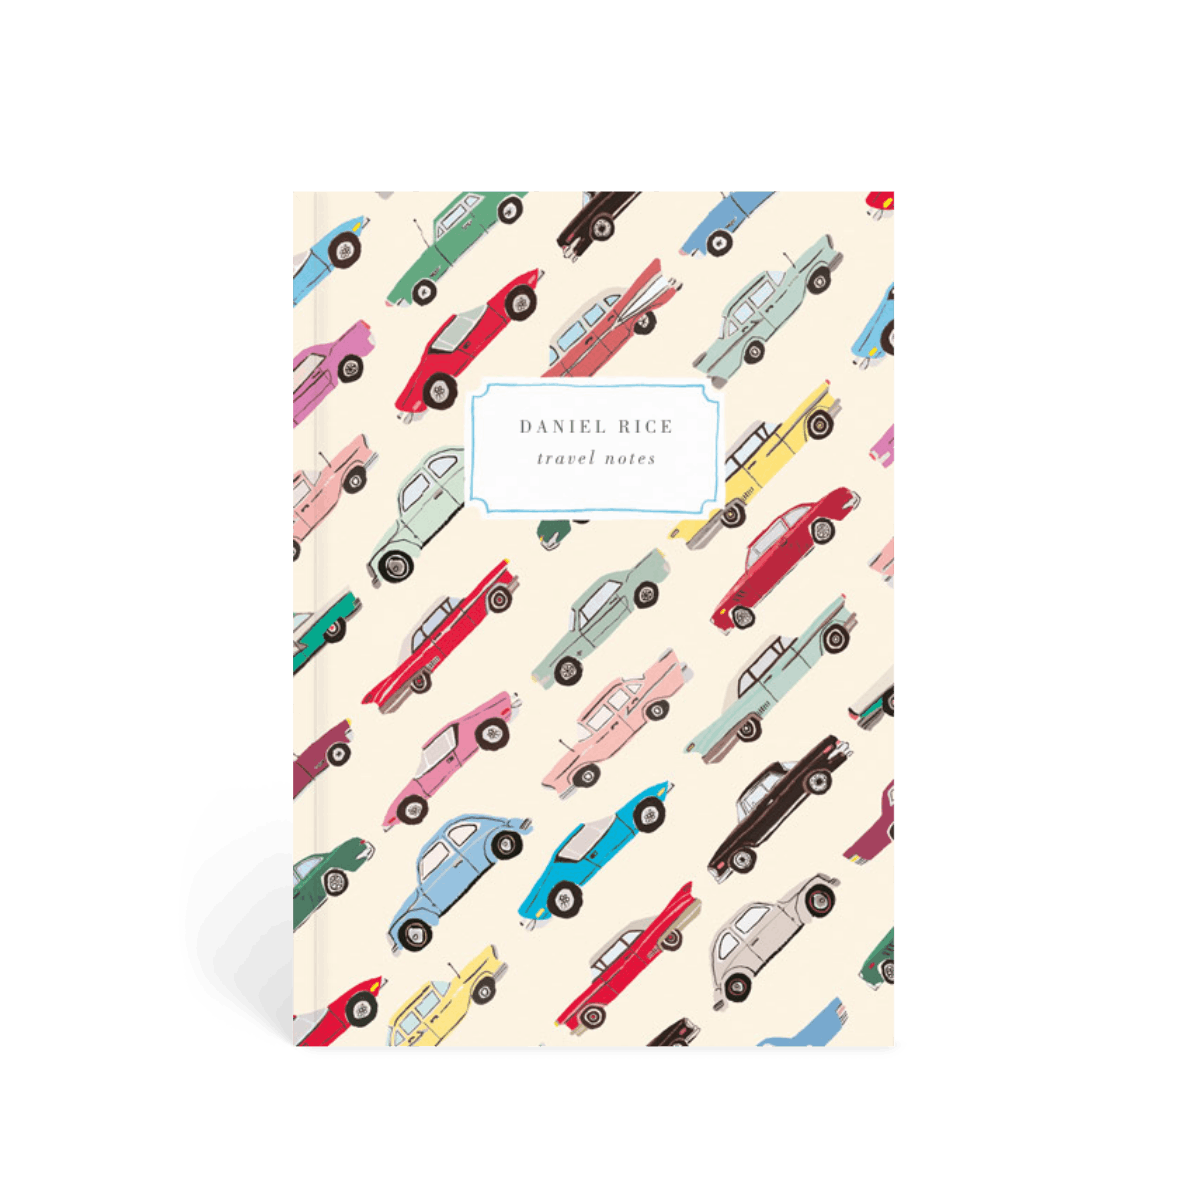 Https%3a%2f%2fwww.papier.com%2fproduct image%2f55829%2f25%2fvintage cars 13408 front 1542299849.png?ixlib=rb 1.1